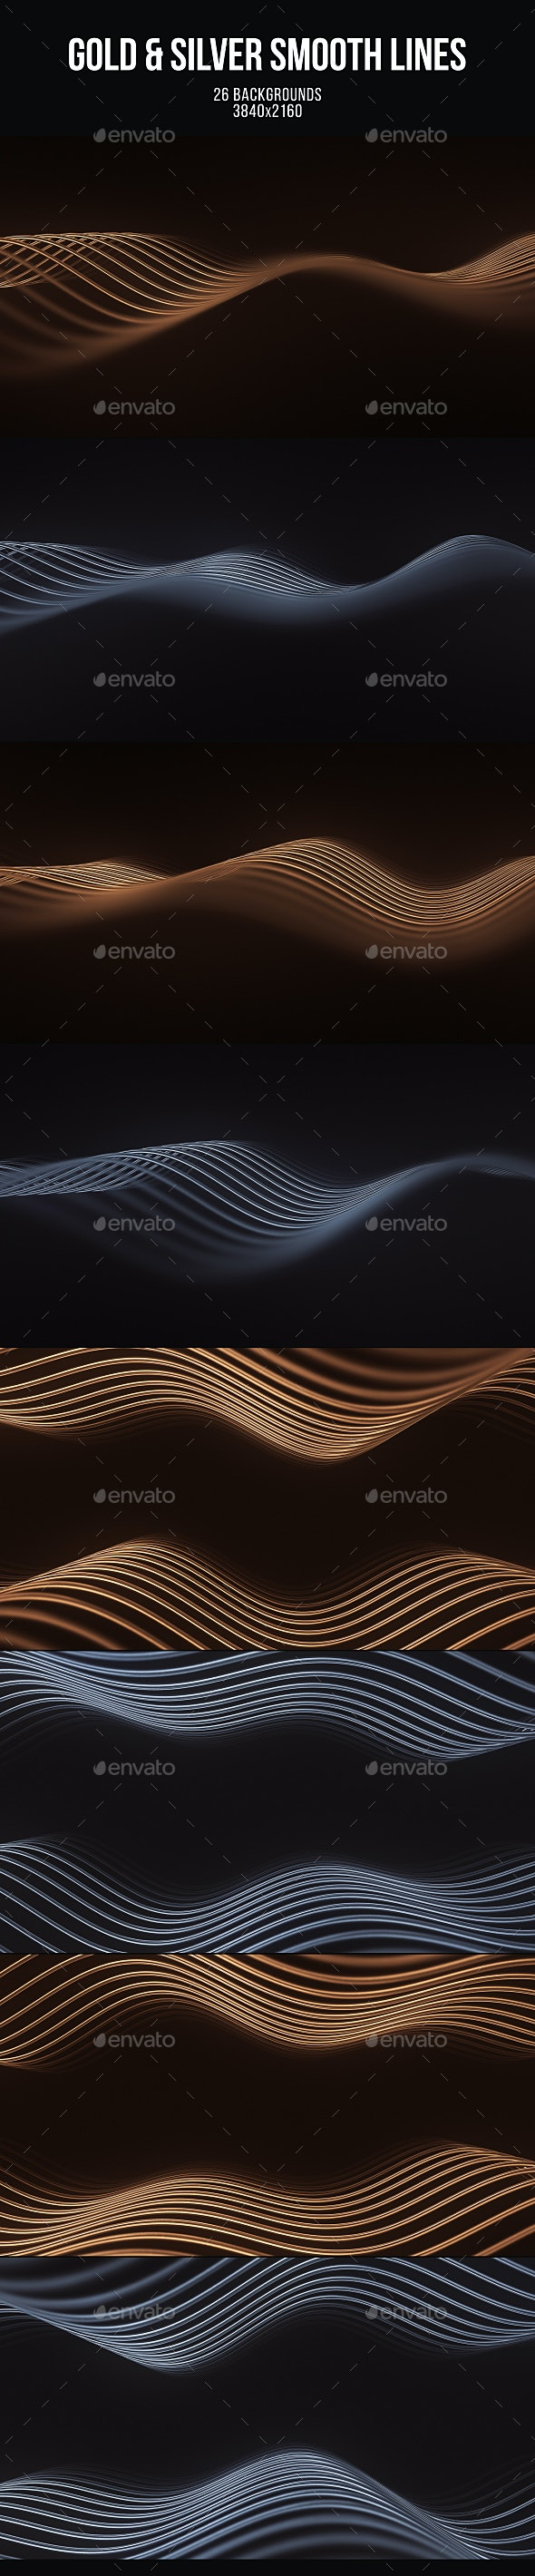 Gold and Silver Smooth Lines - Abstract Backgrounds